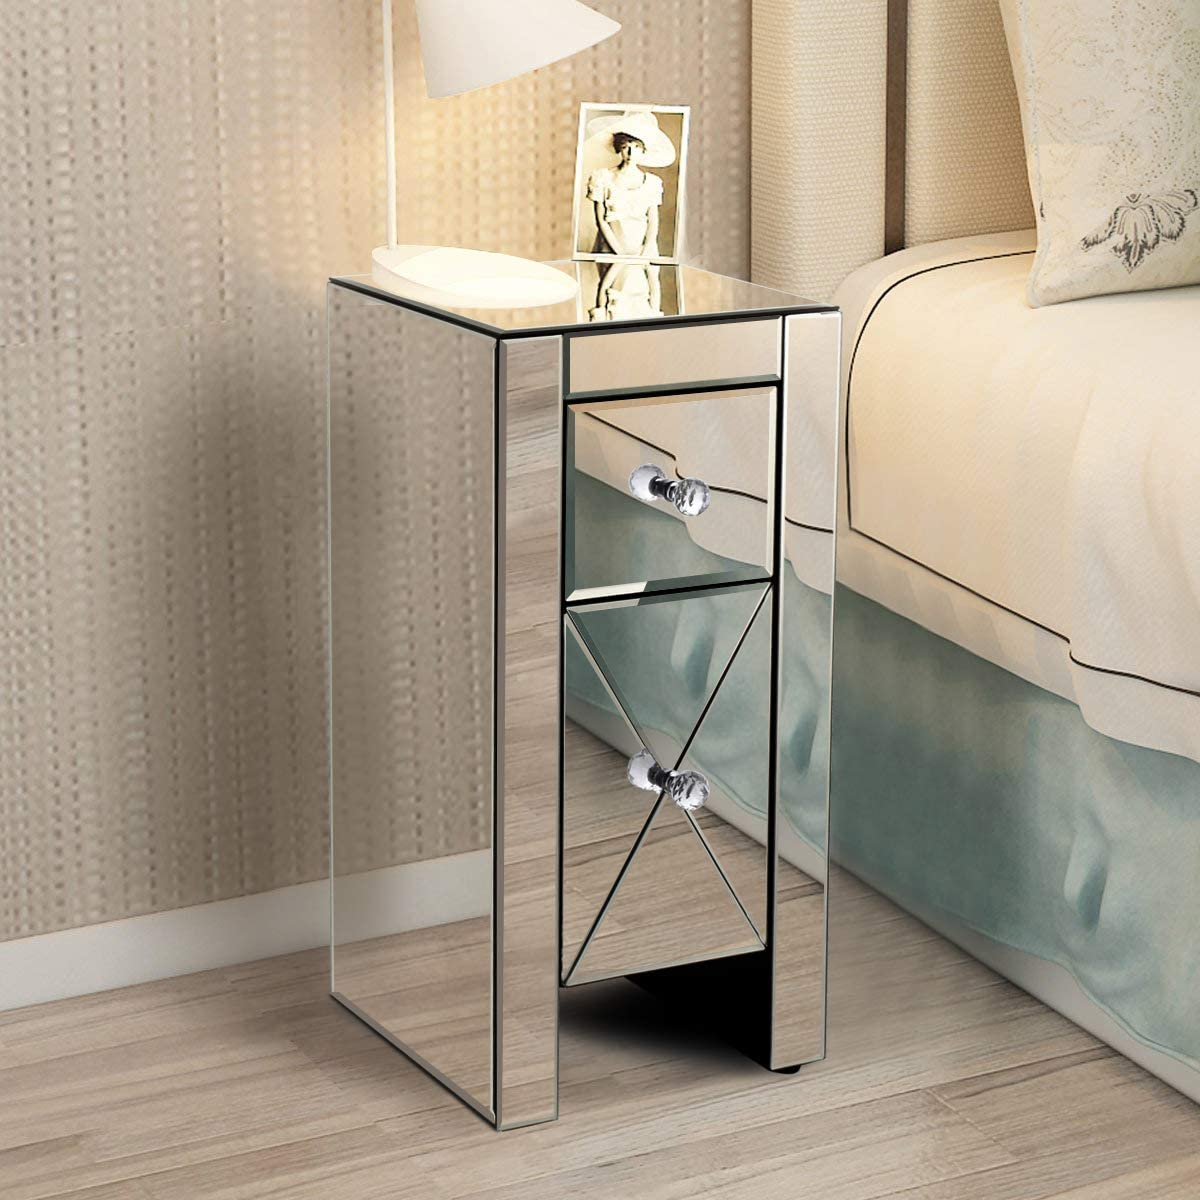 LAZYMOON Small Mirrored End Table 2-Drawer Nightstand Bedside Table Storage Accent Cabinet Silver